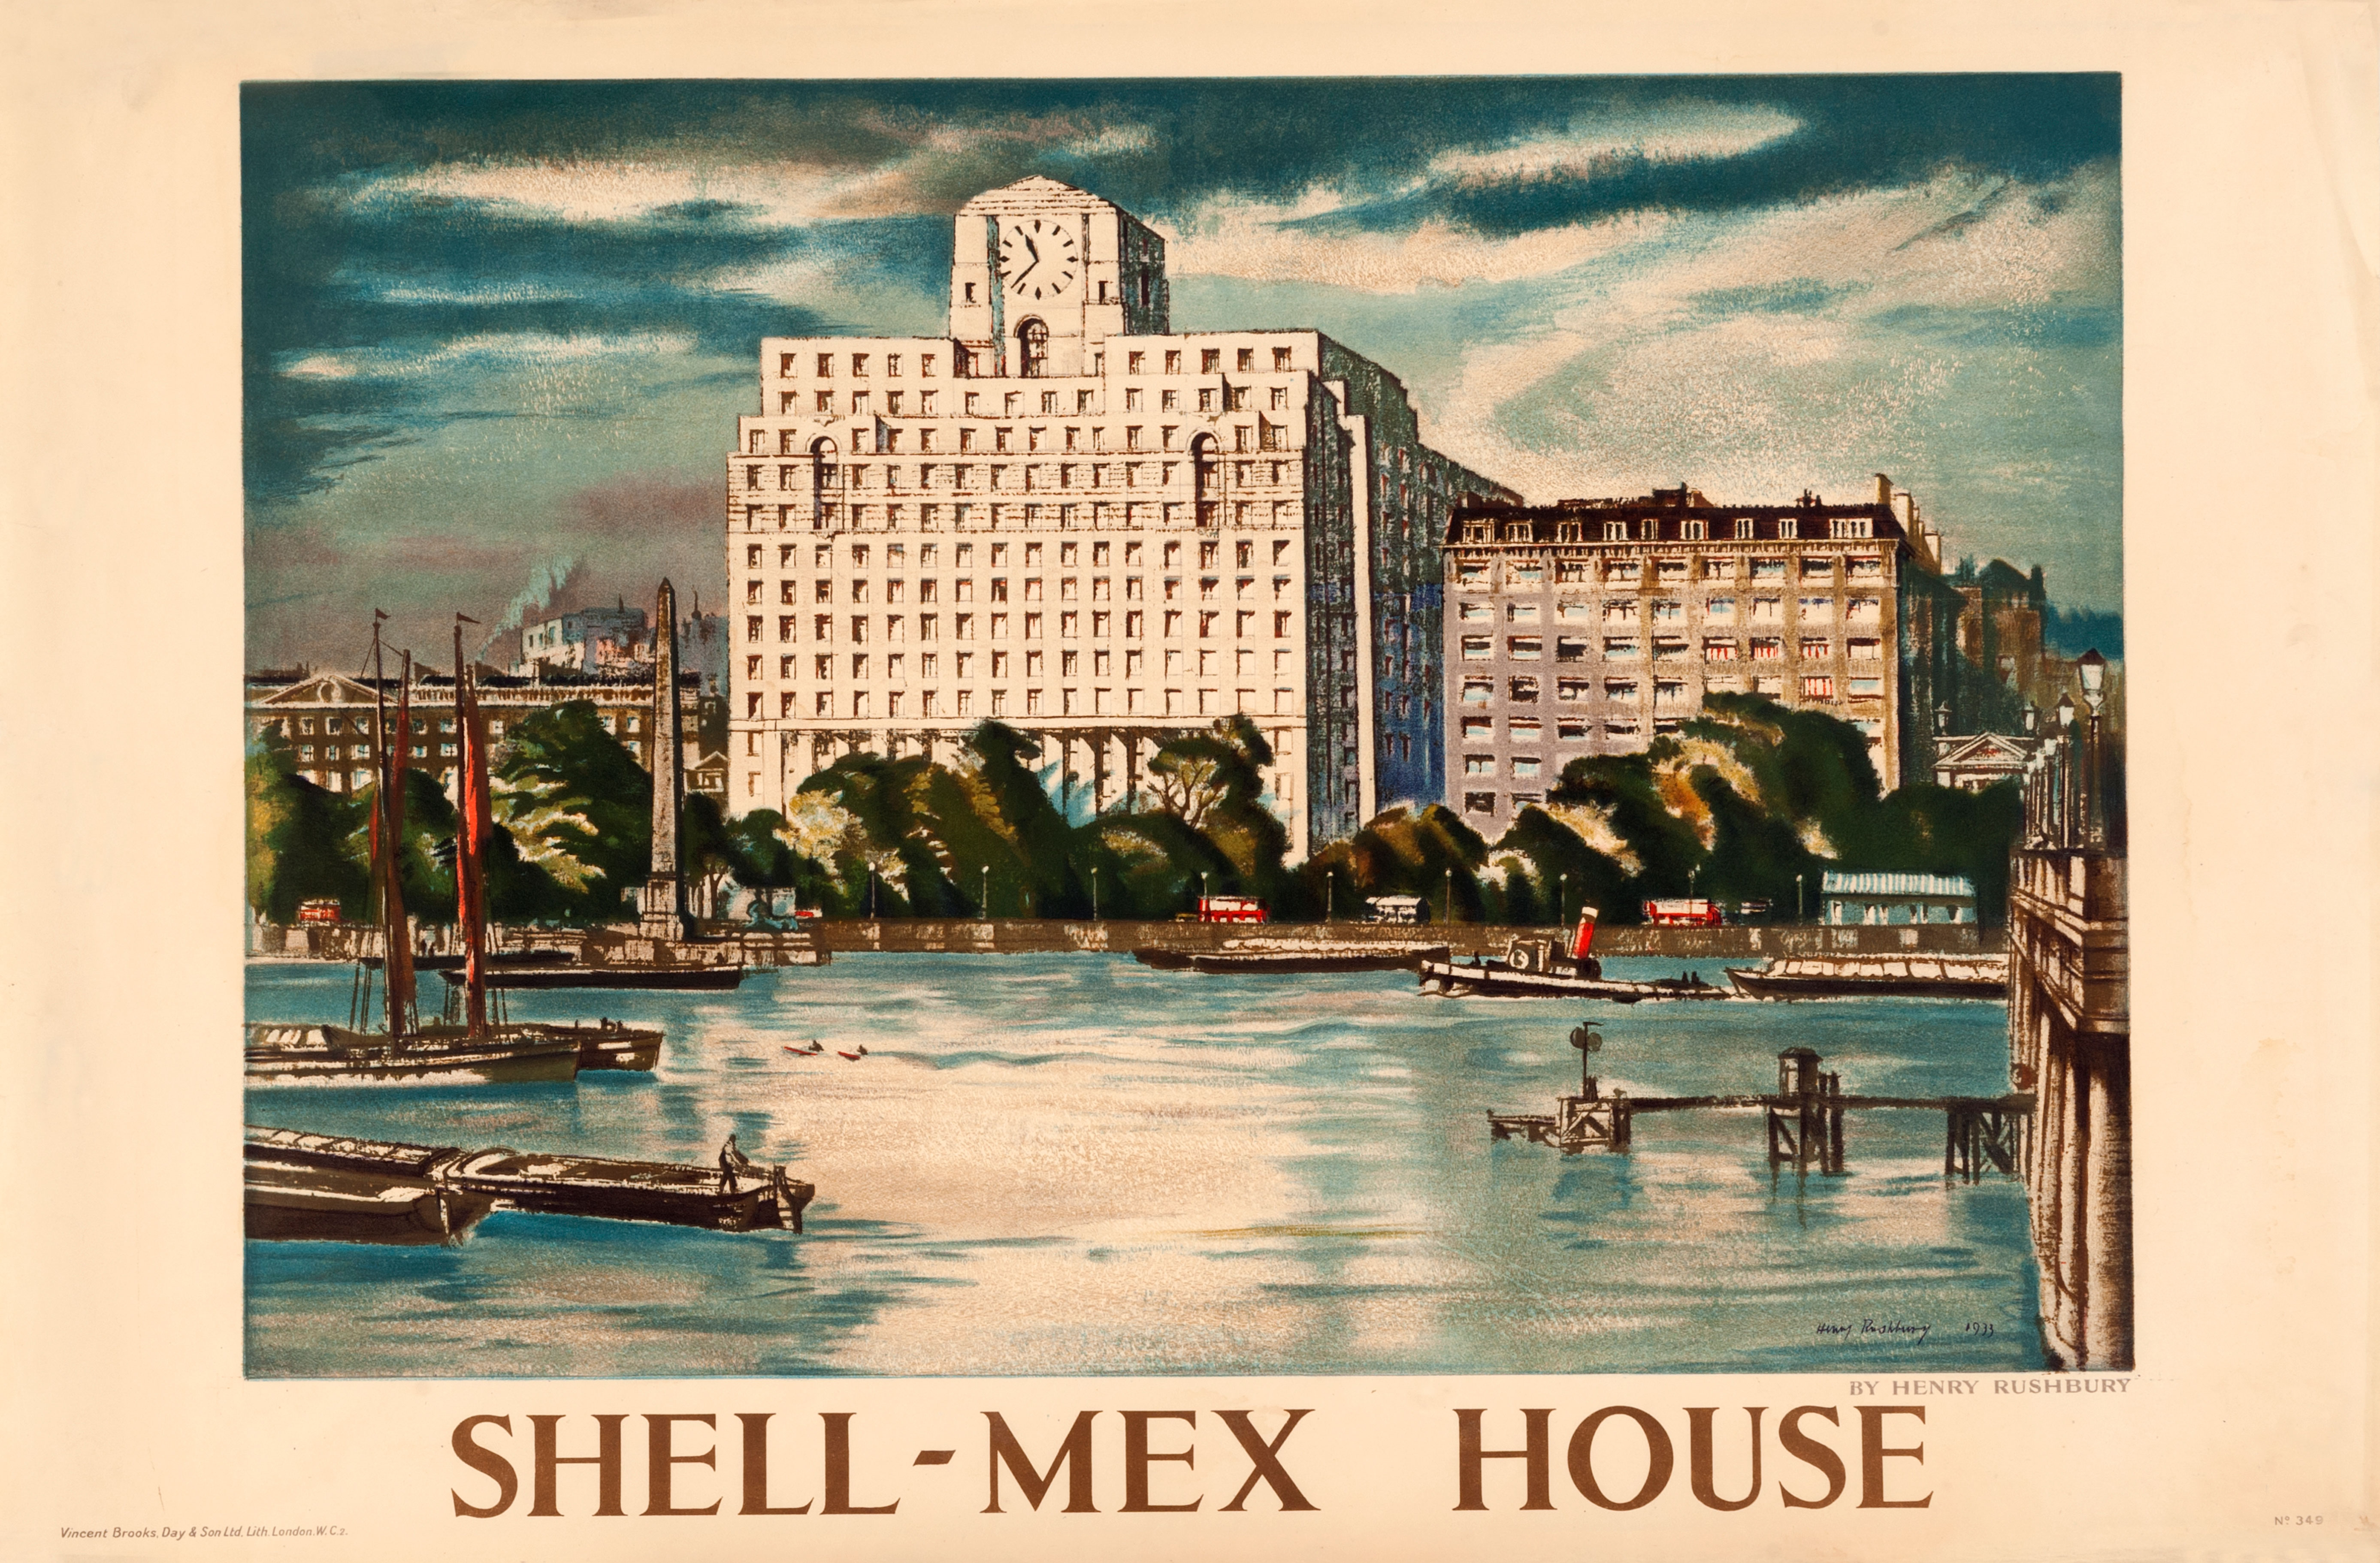 Shell poster number 349, Shell-Mex House by Sir Henry Rushbury. Landscape painting depicting the Shell Mex building in the 1930s, when it was newly built.